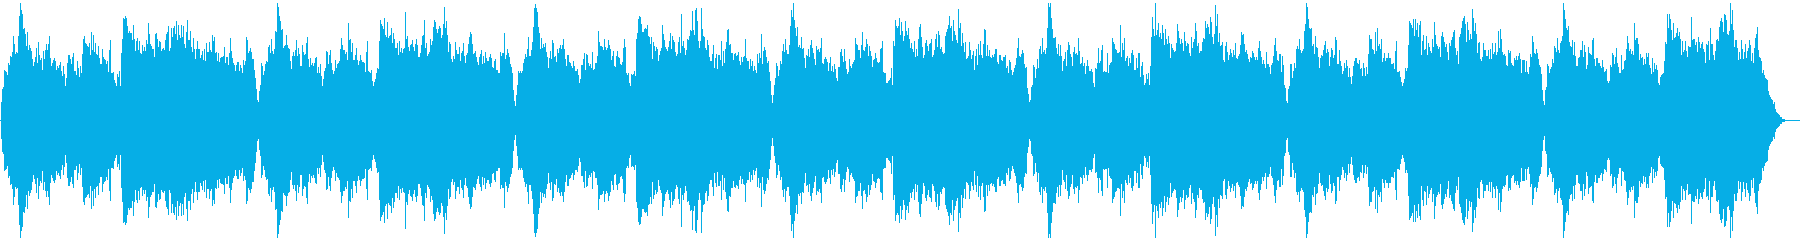 Melody that feels a sad start's reproduced waveform